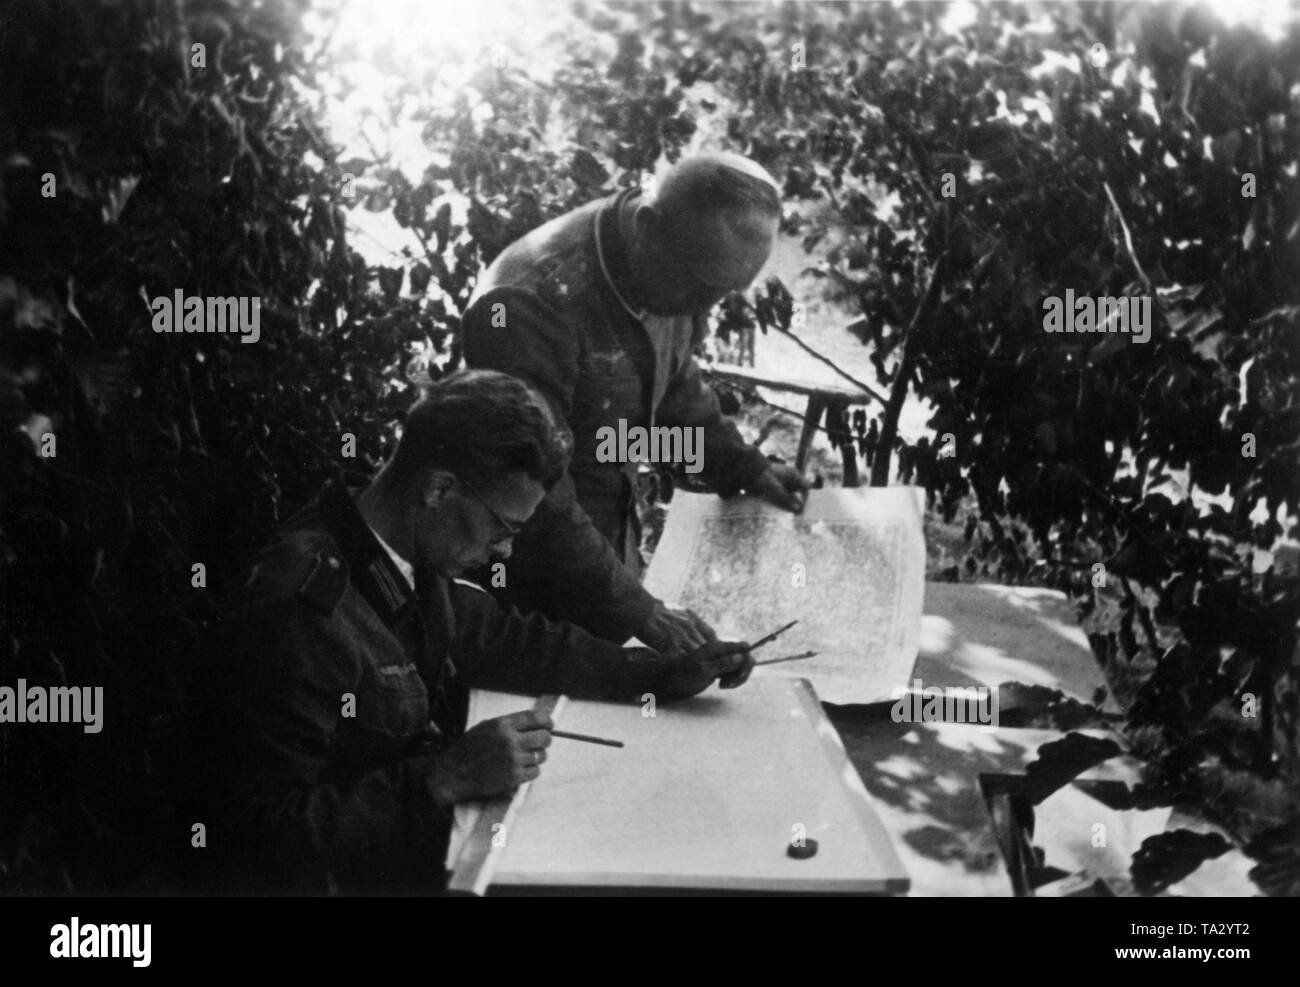 Drawer of a Korpskartenstelle (Corps Map Unit) of the Wehrmacht draws new scout results into existing maps. At Borowka. A lieutenant is sitting in front, a first lieutenant behind him. Photo: war reporter Utecht. - Stock Image